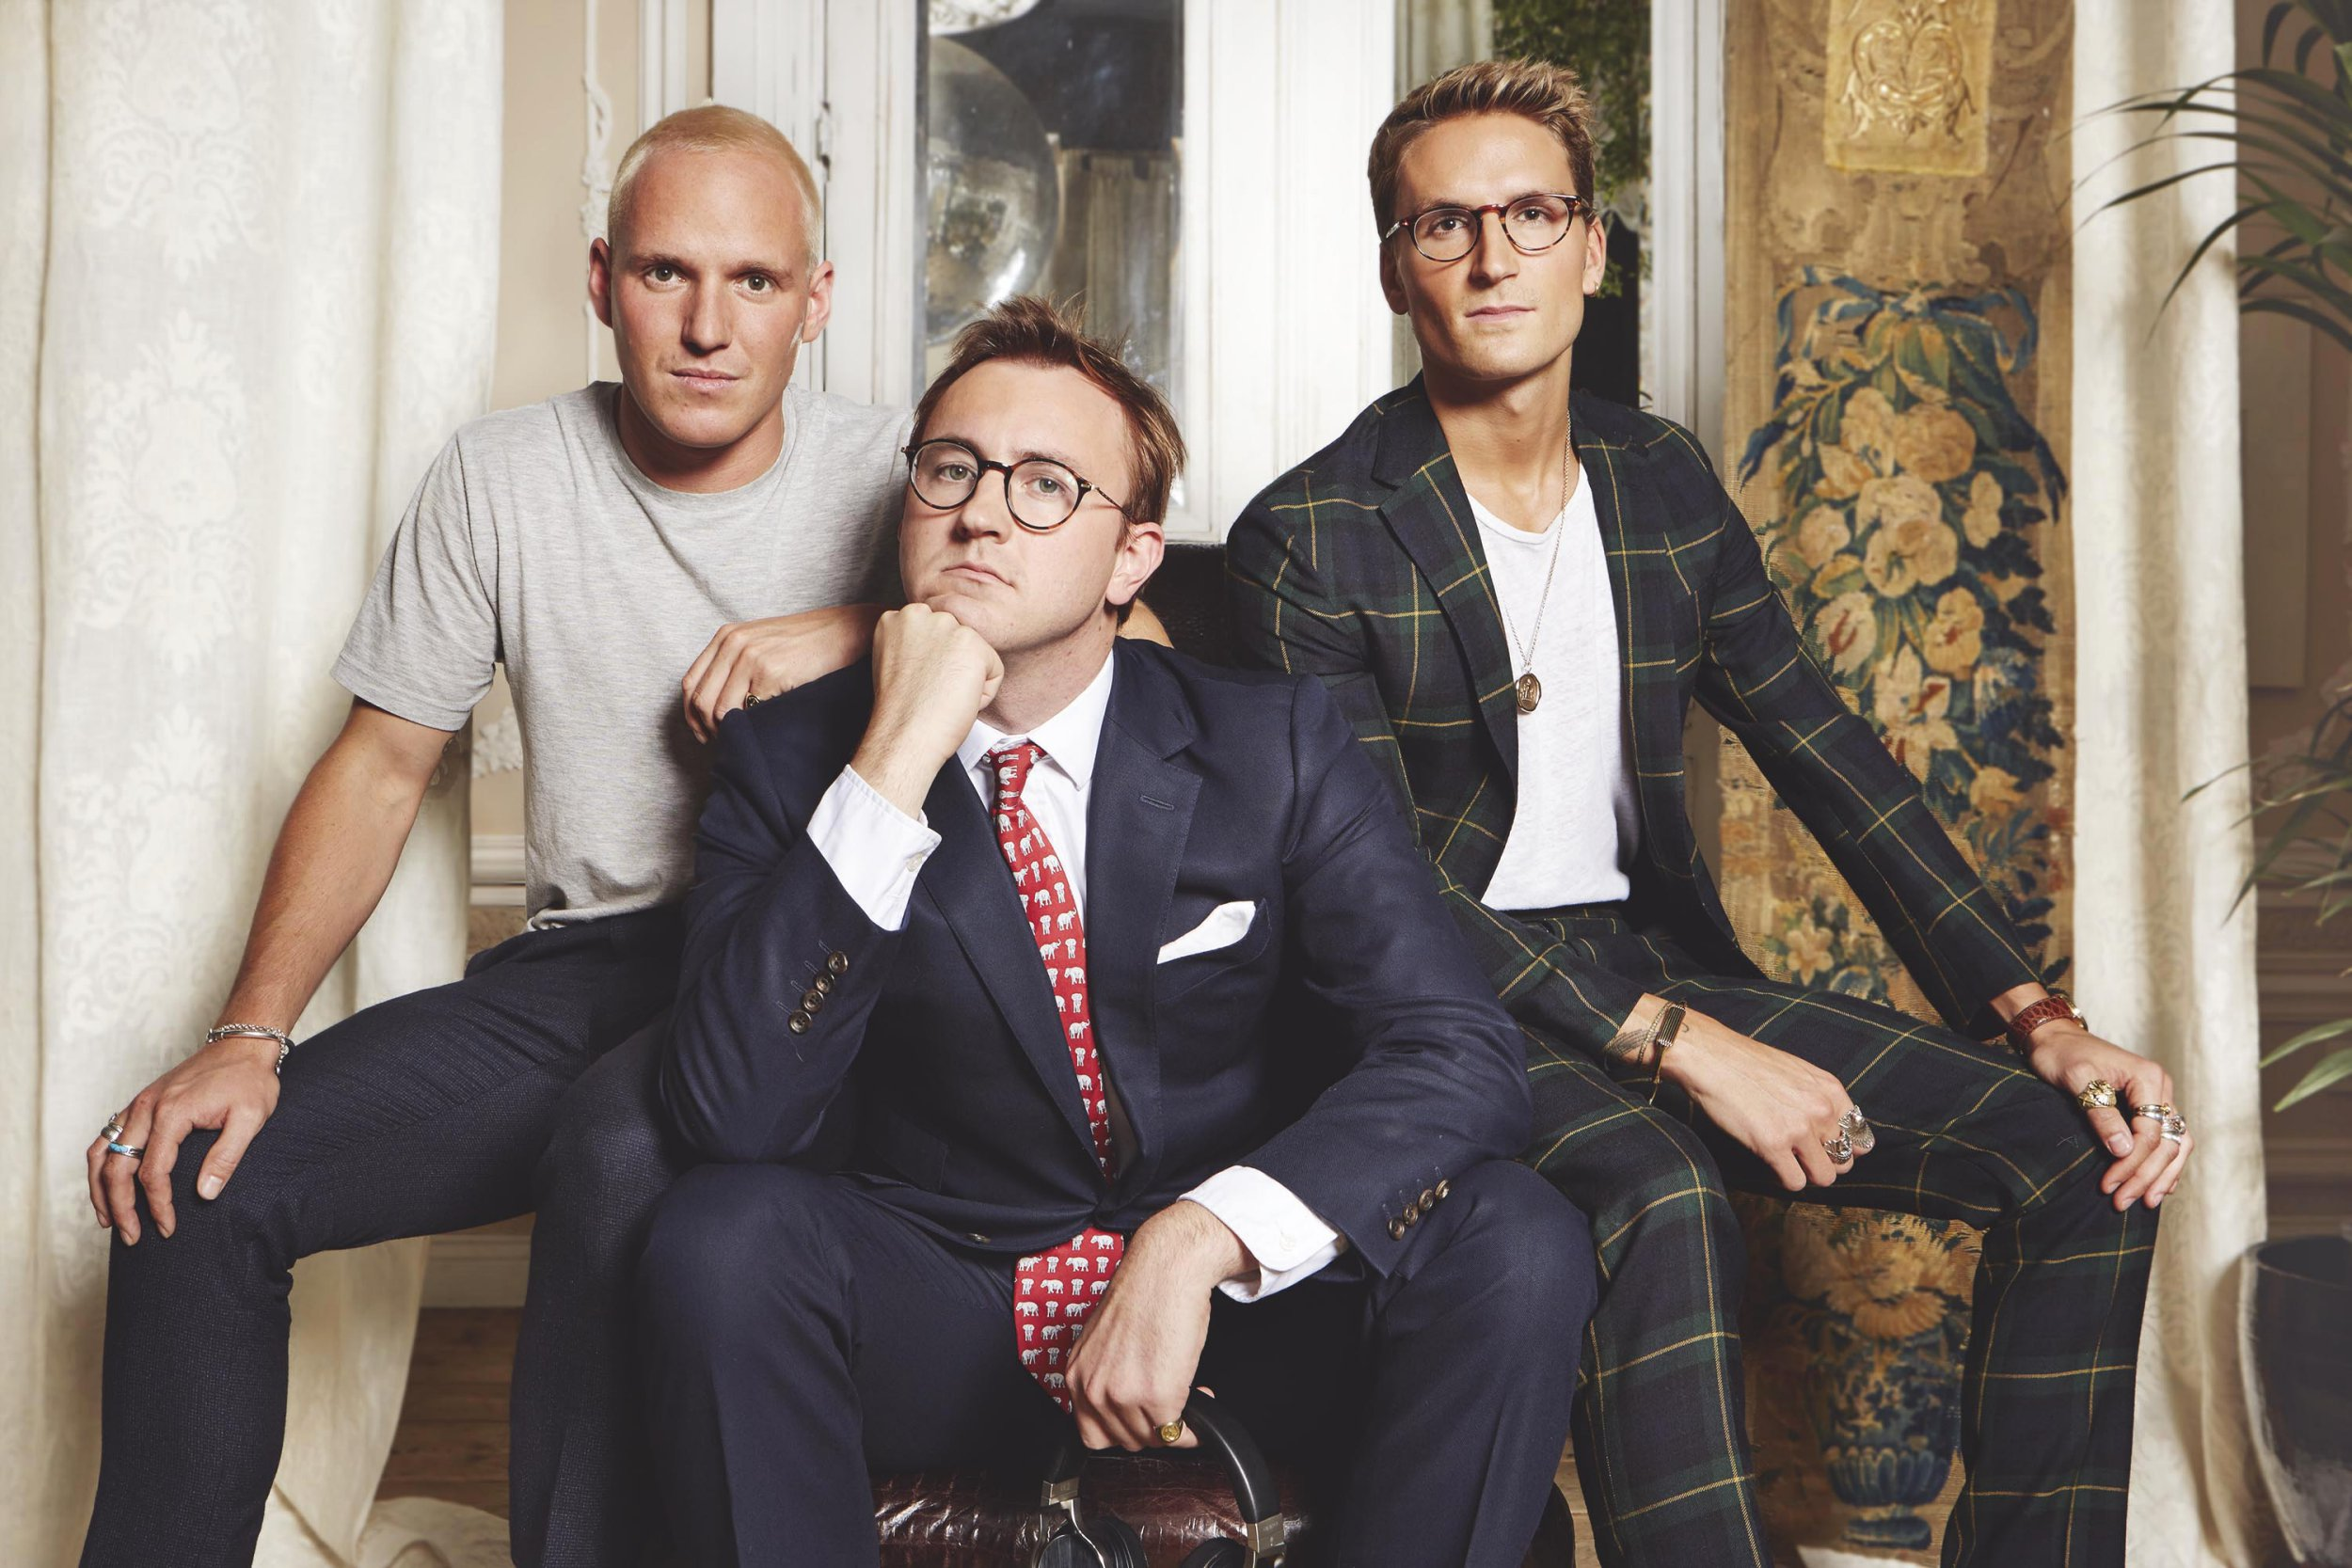 Posh reality TV show Absolutely Ascot 'set to rival Made In Chelsea'